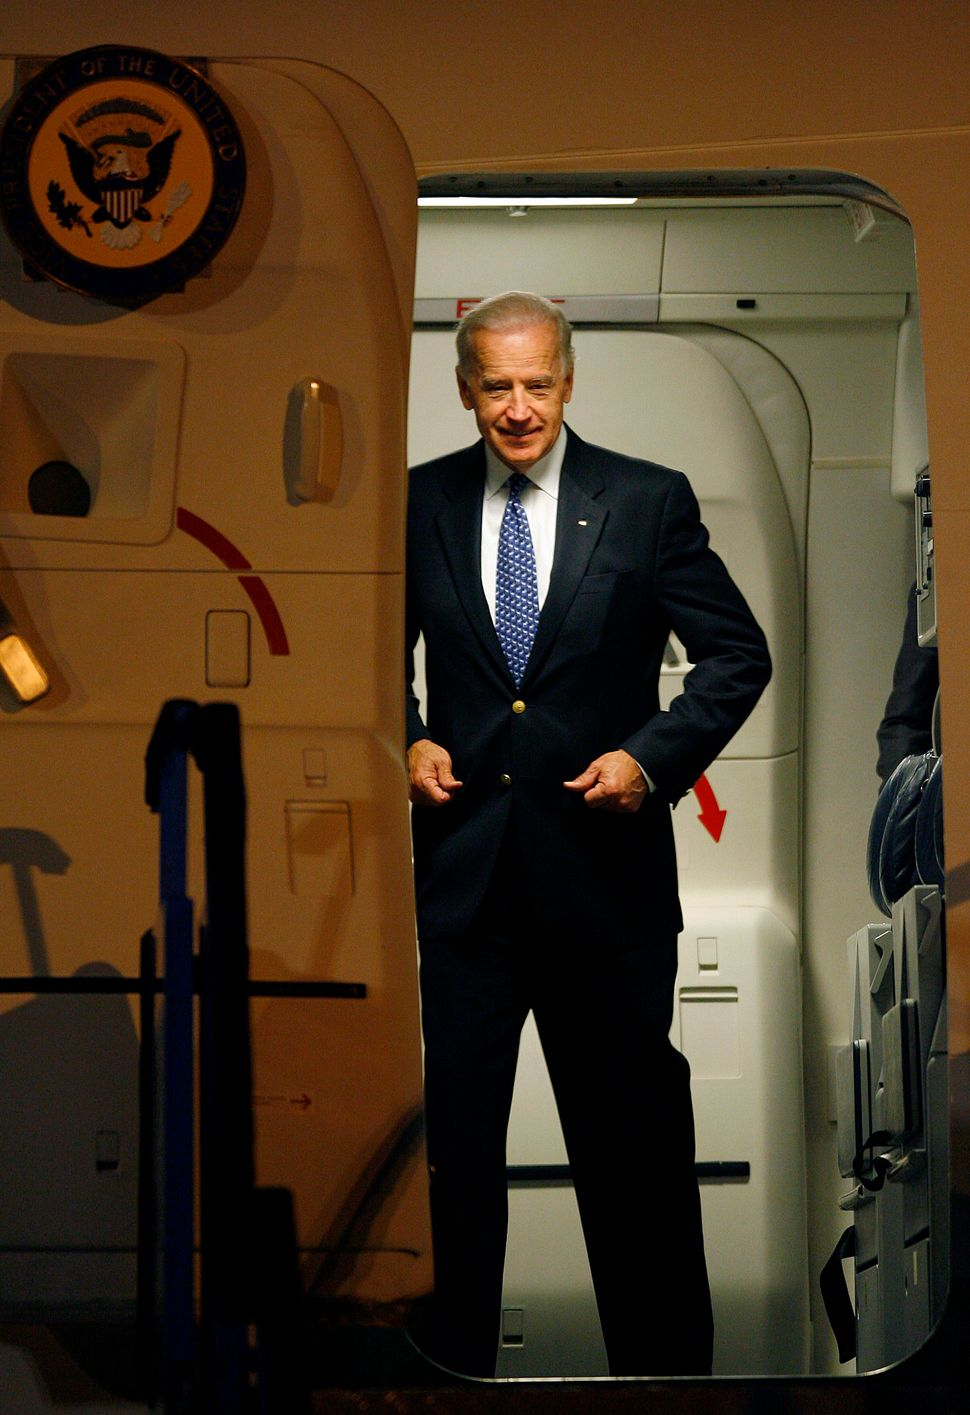 U.S. Vice President Joe Biden gets ready to step out of a plane after landing in Sarajevo early May 19, 2009. Biden arrived i